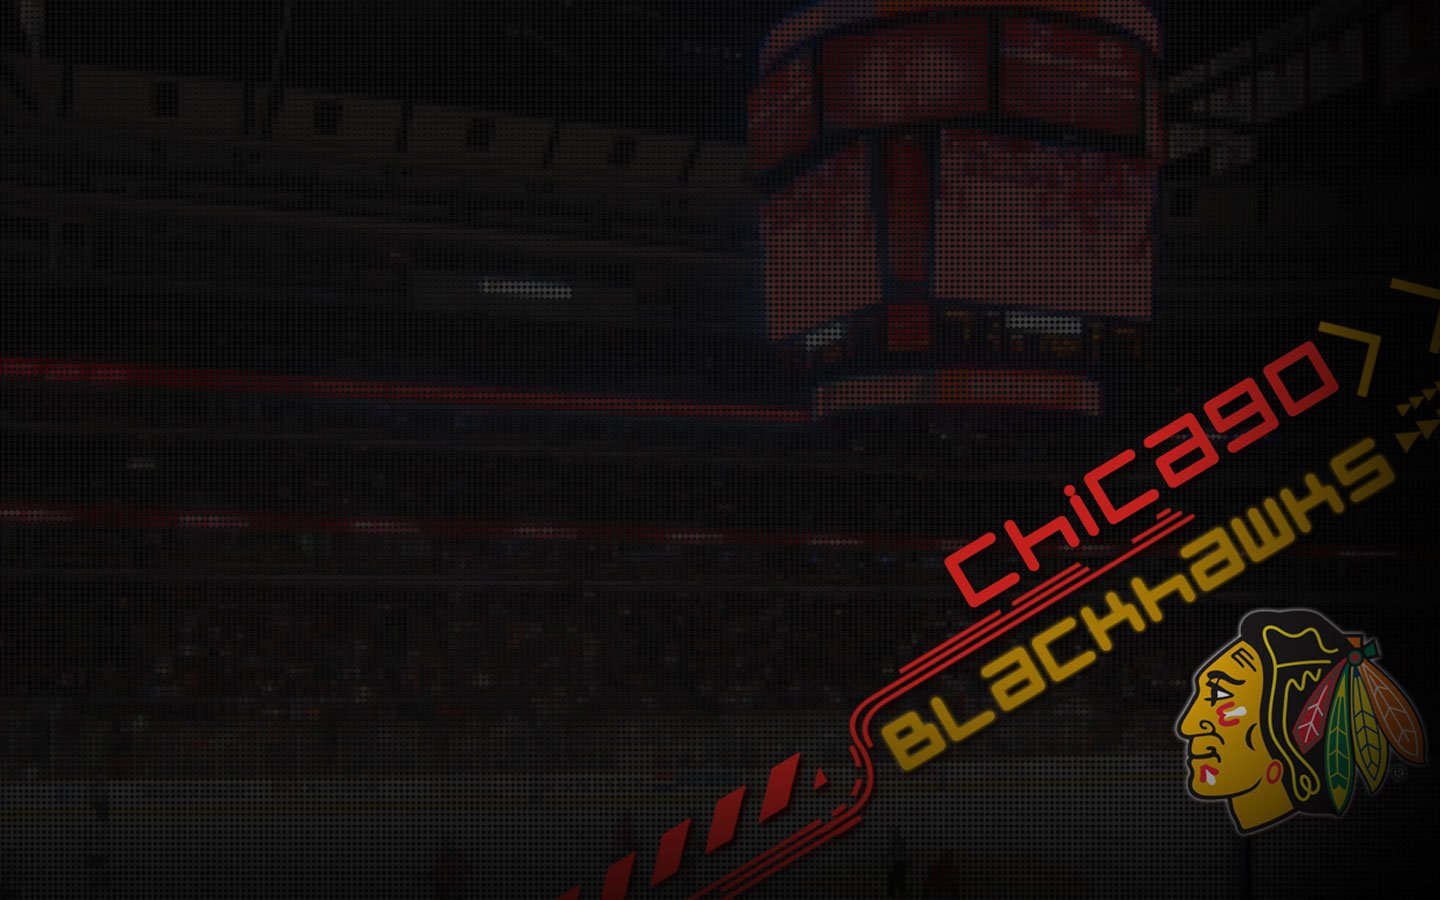 Chicago Blackhawks wallpapers Chicago Blackhawks background   Page 3 1440x900